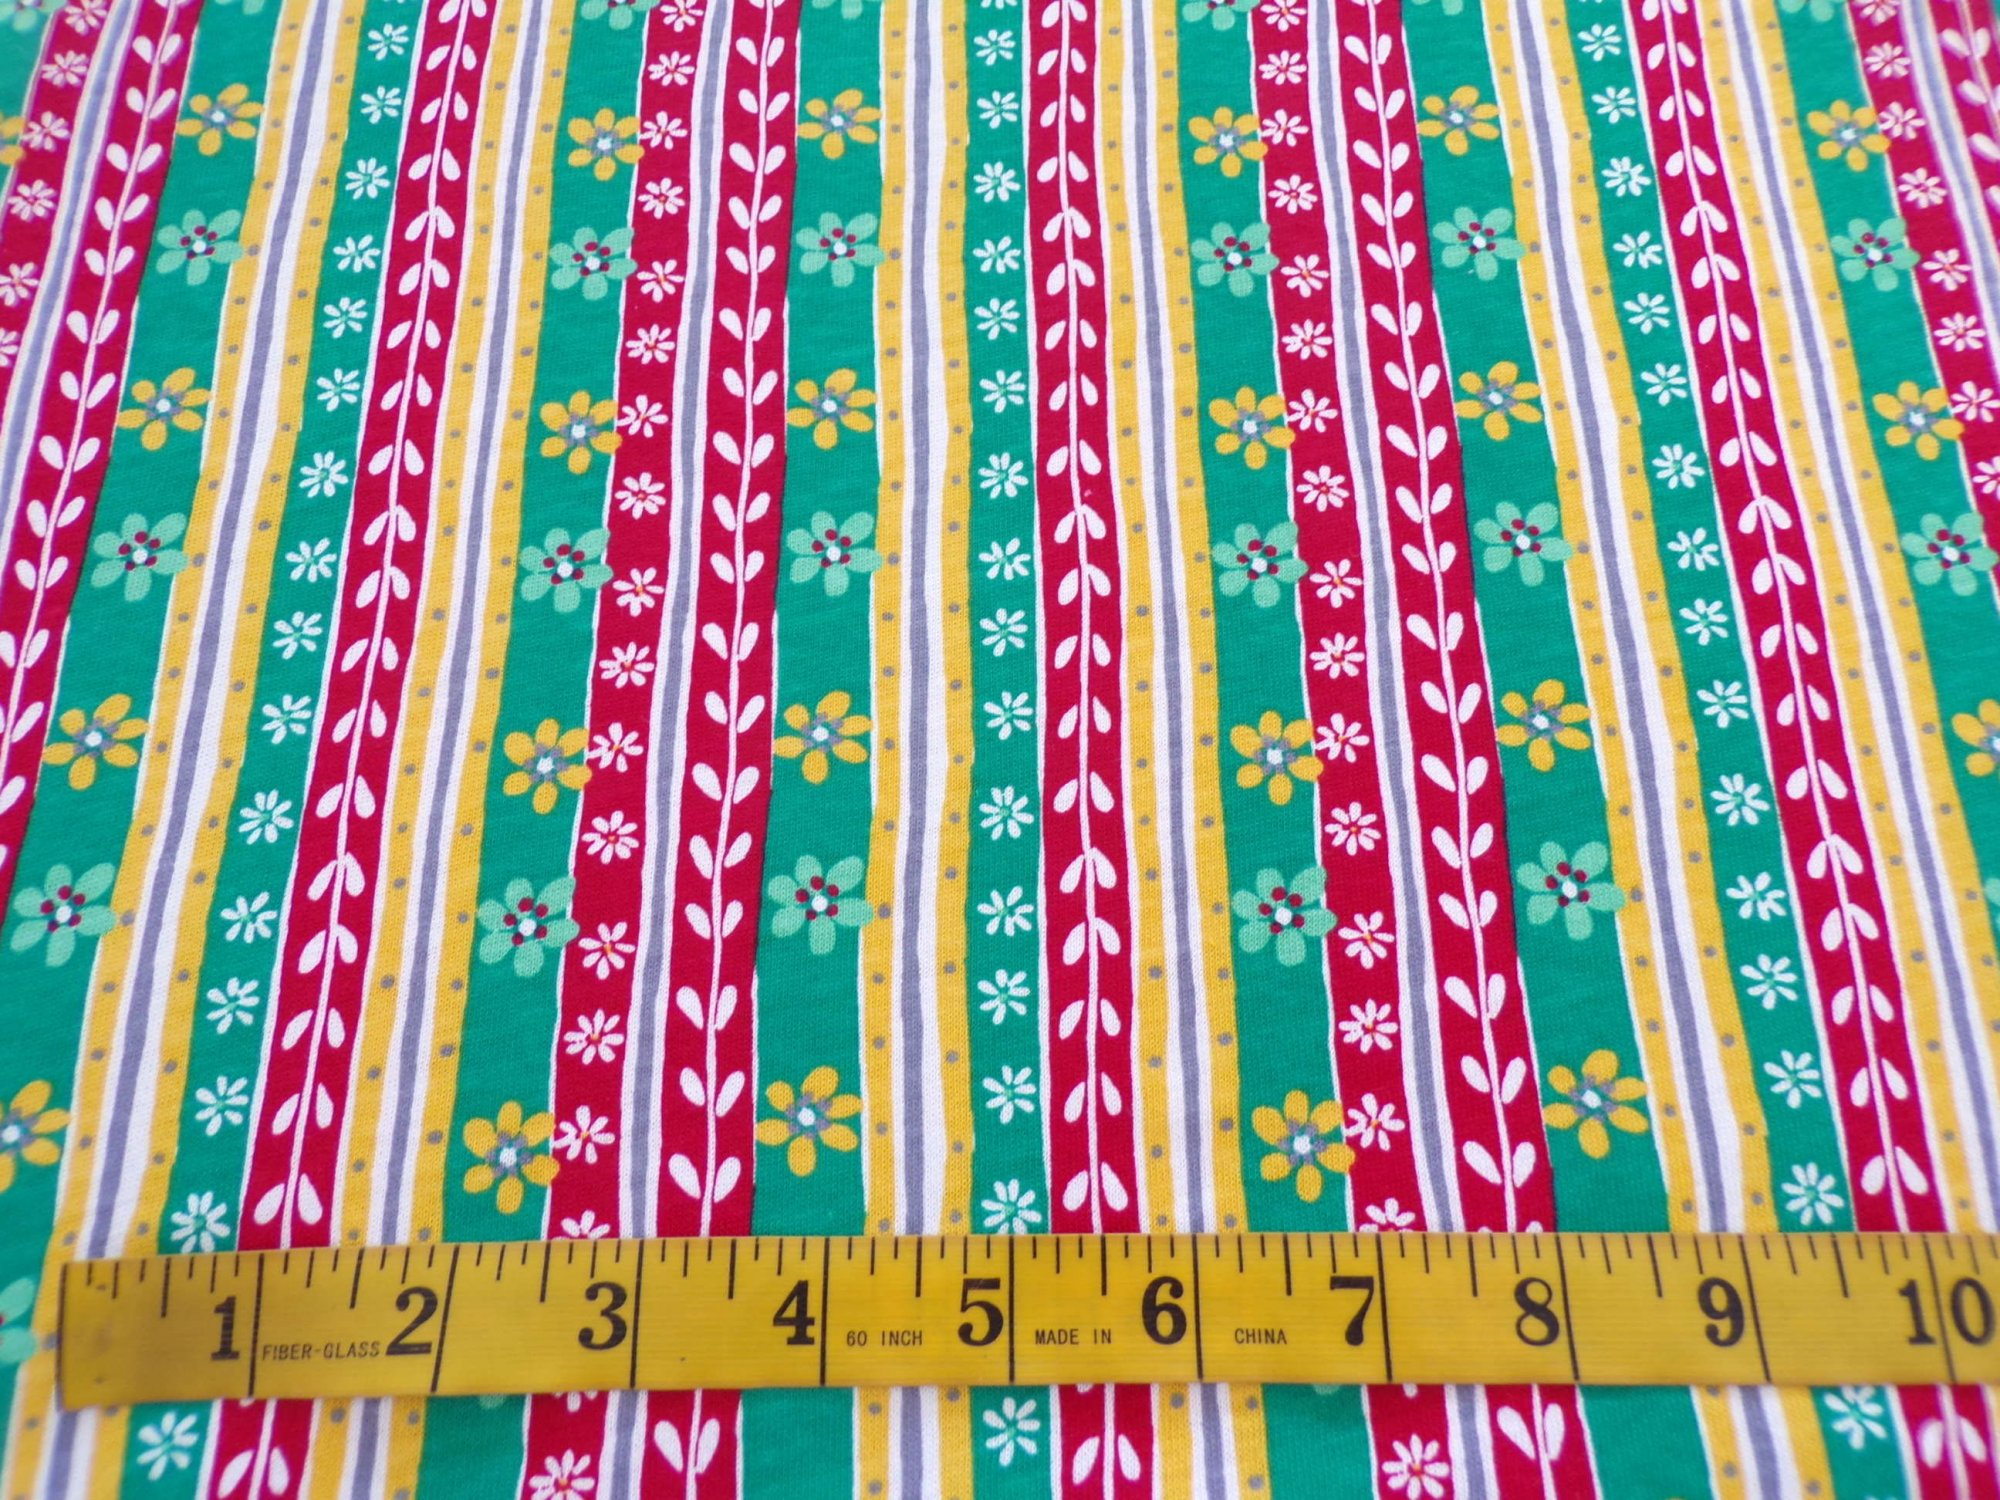 Cotton Jersey - Green, Red, & Yellow Floral Stripes